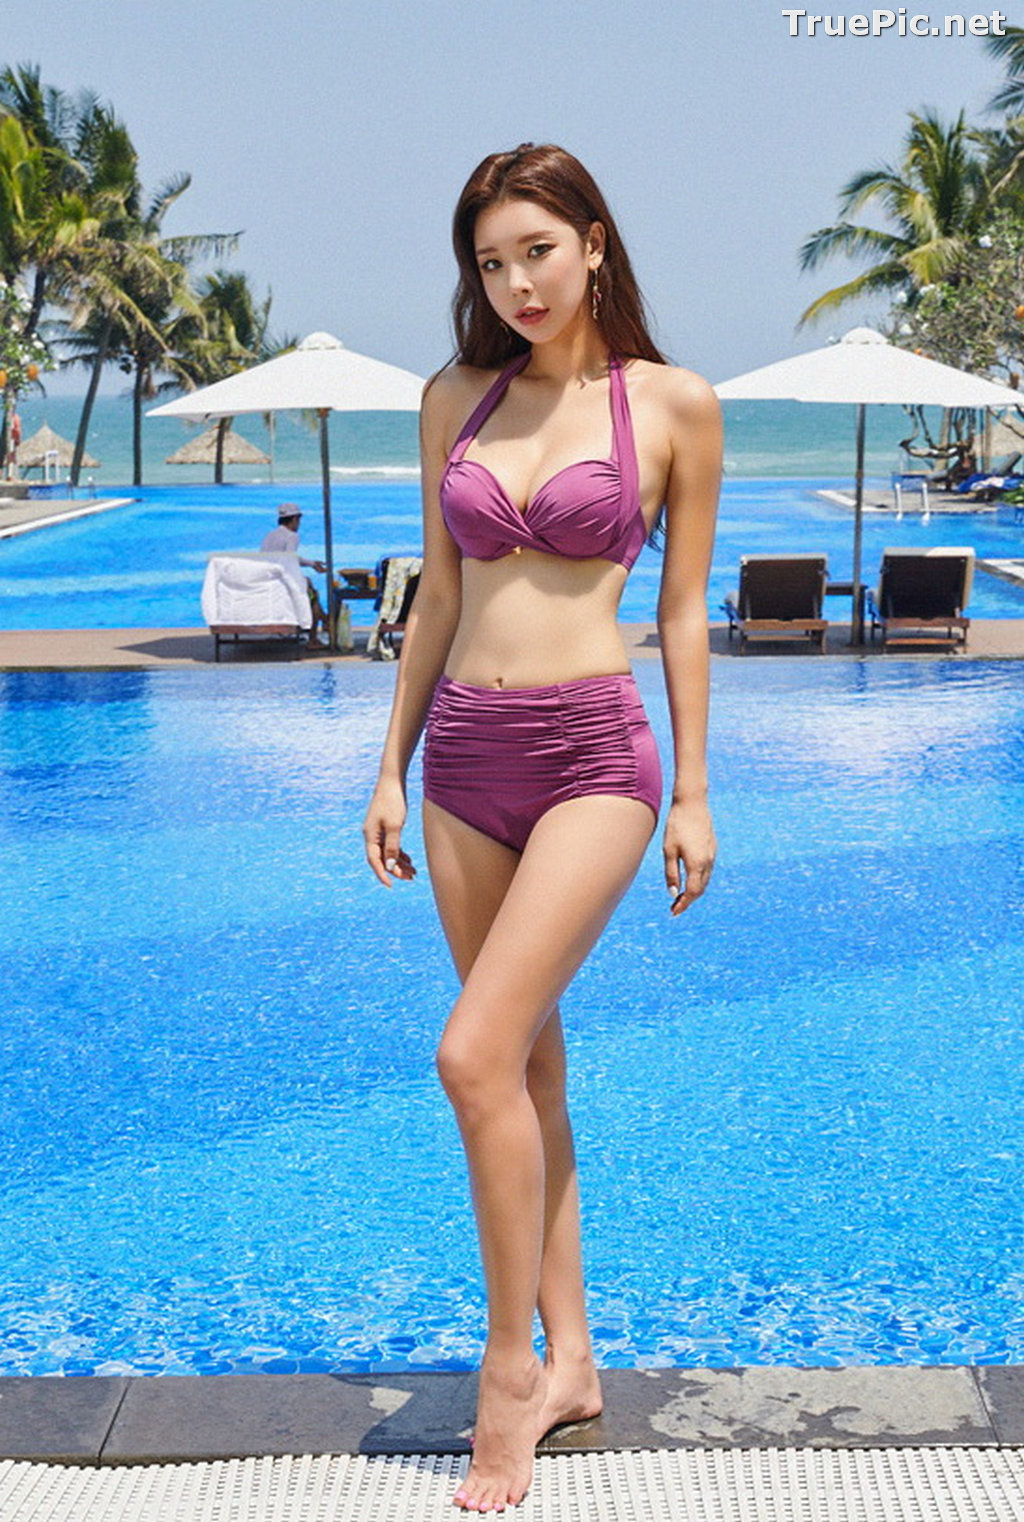 Image Park Da Hyun - Korean Fashion Model - RoseMellow Purple Bikini - TruePic.net - Picture-6